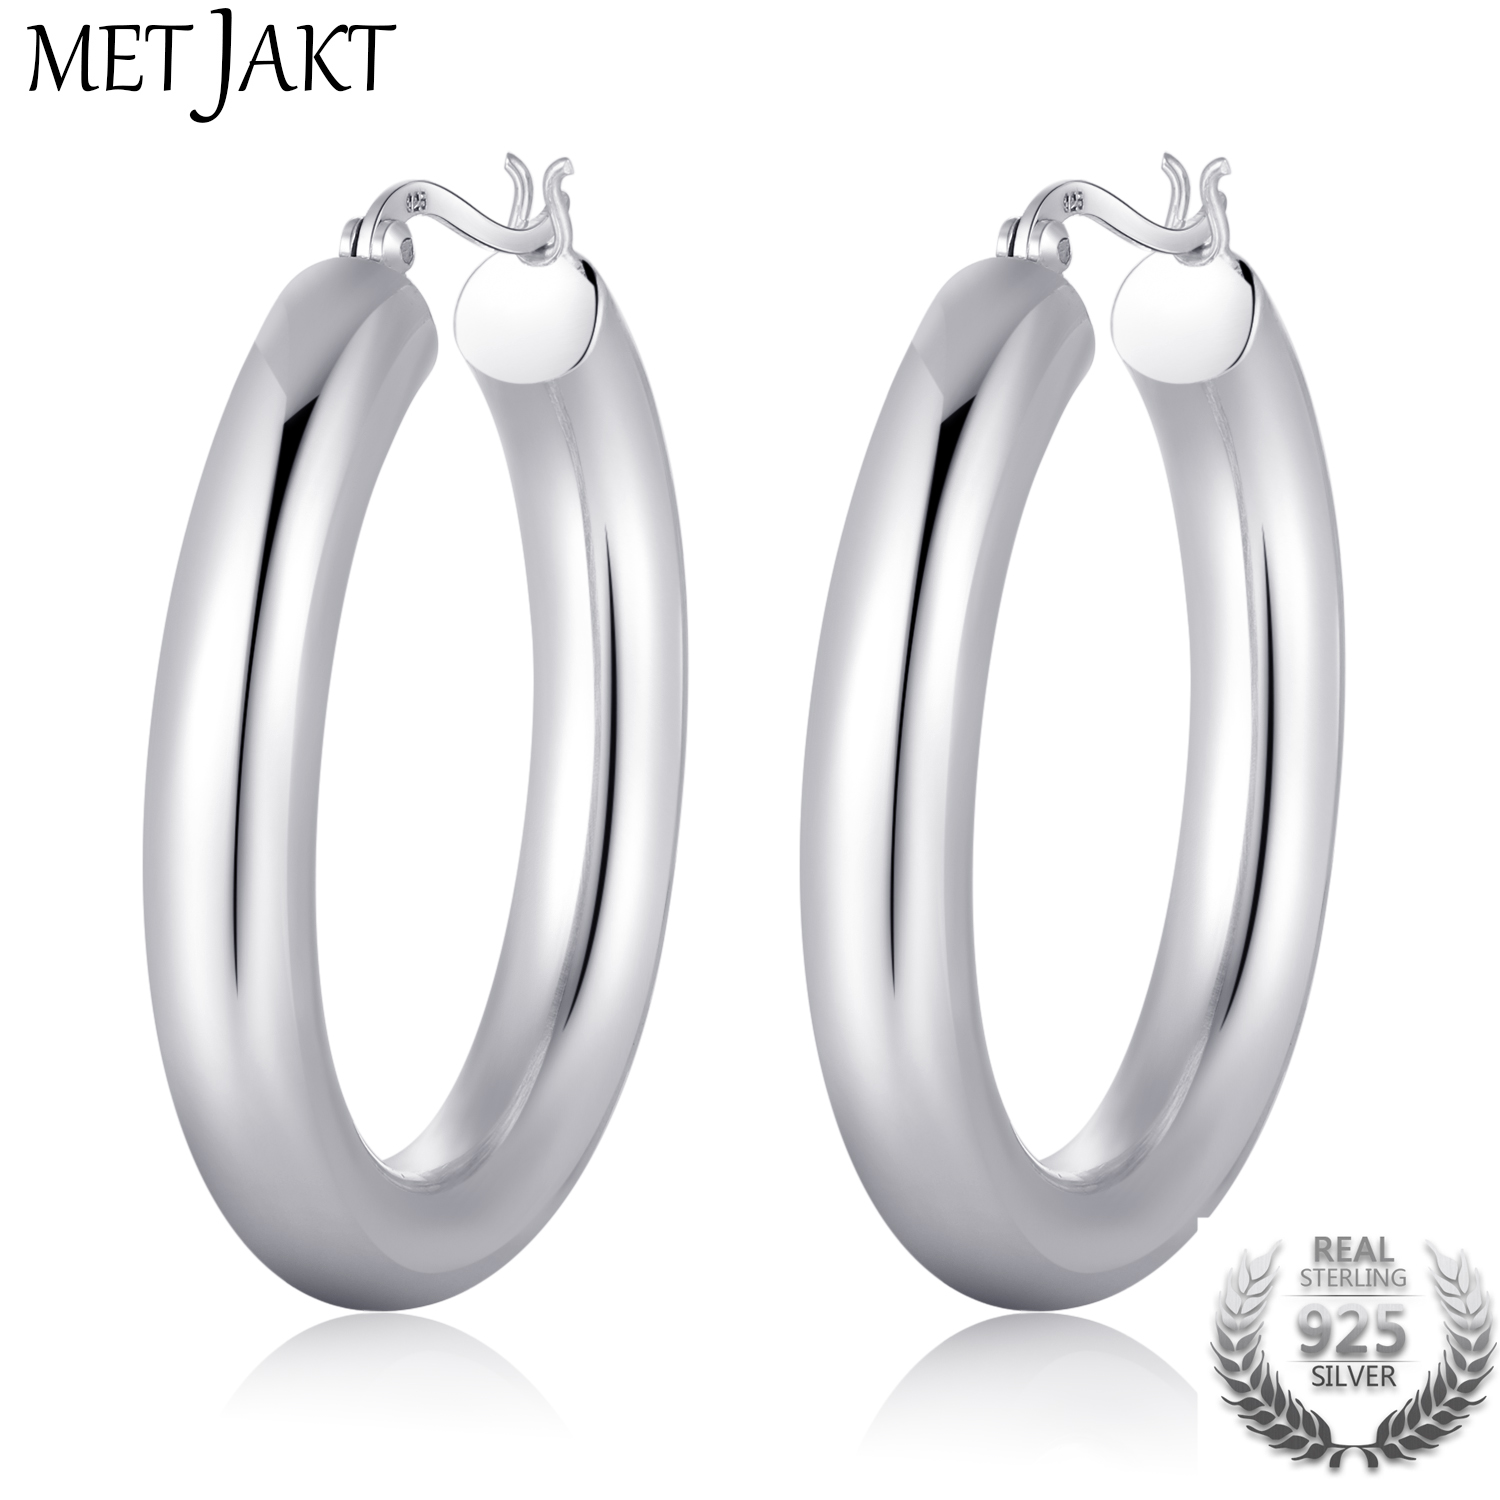 MetJakt Classic Round Real 925 Sterling Silver Hoop Earrings for Women s Retro Ethnic Style Vintage